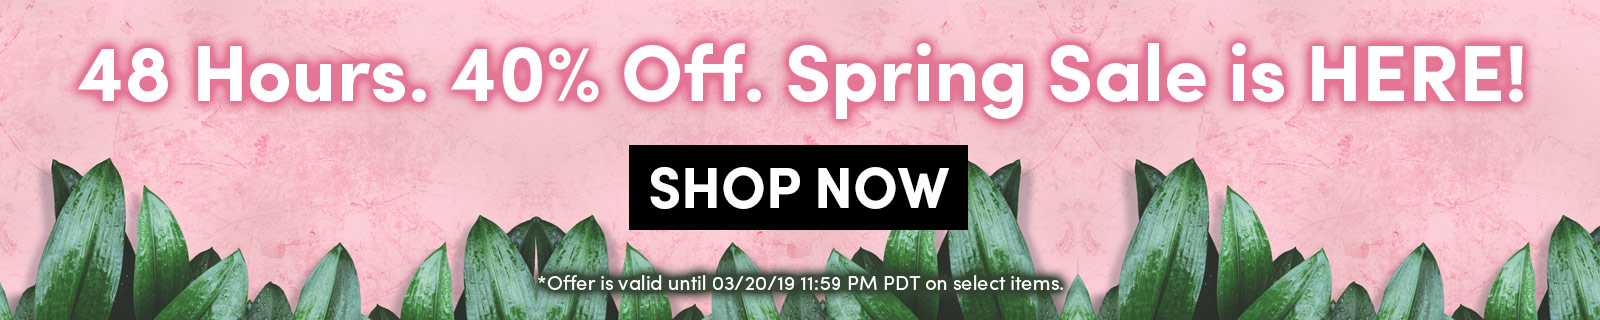 48 Hours. 40% Off. Spring Sale is HERE! SHOP NOW